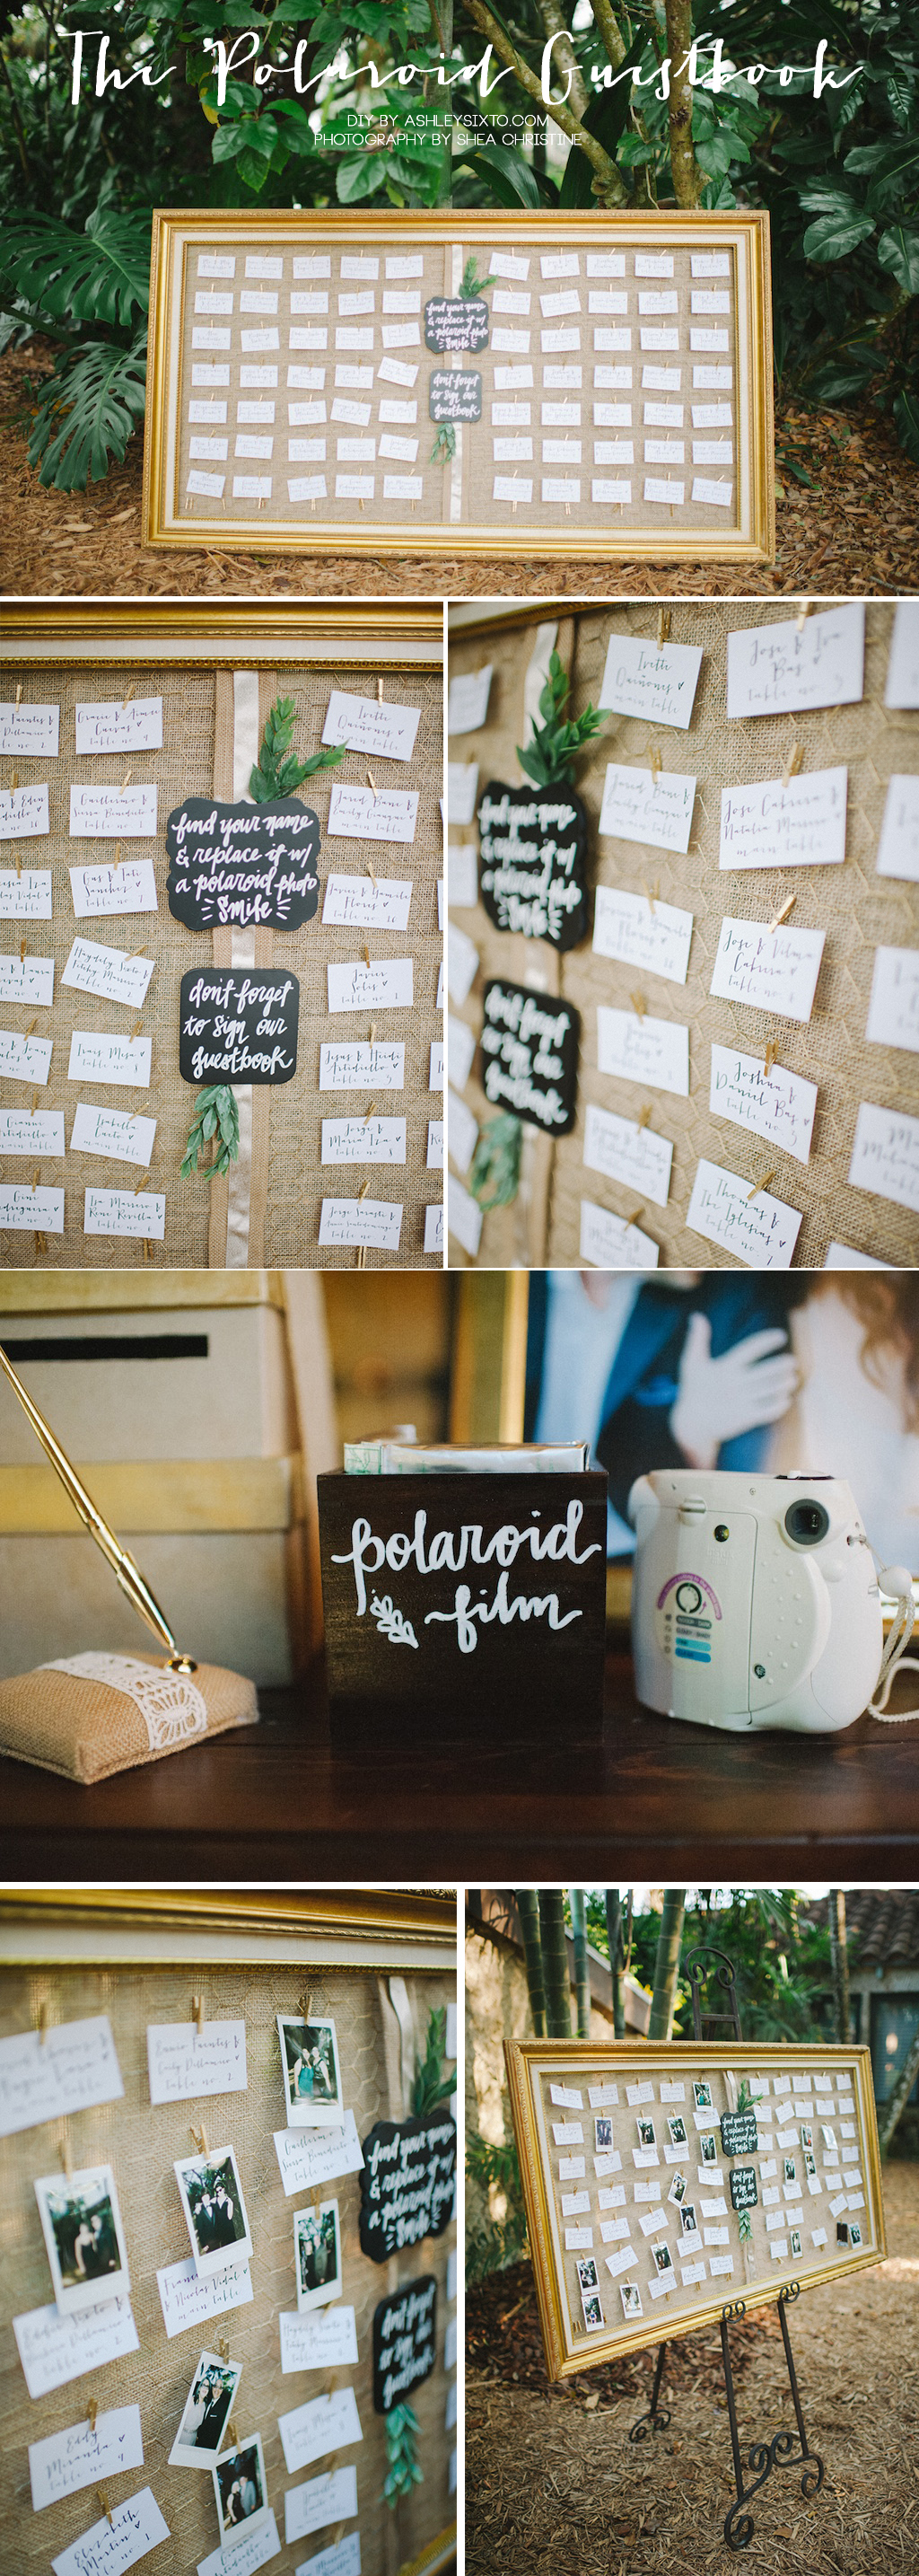 Details_The Polaroid Guestbook